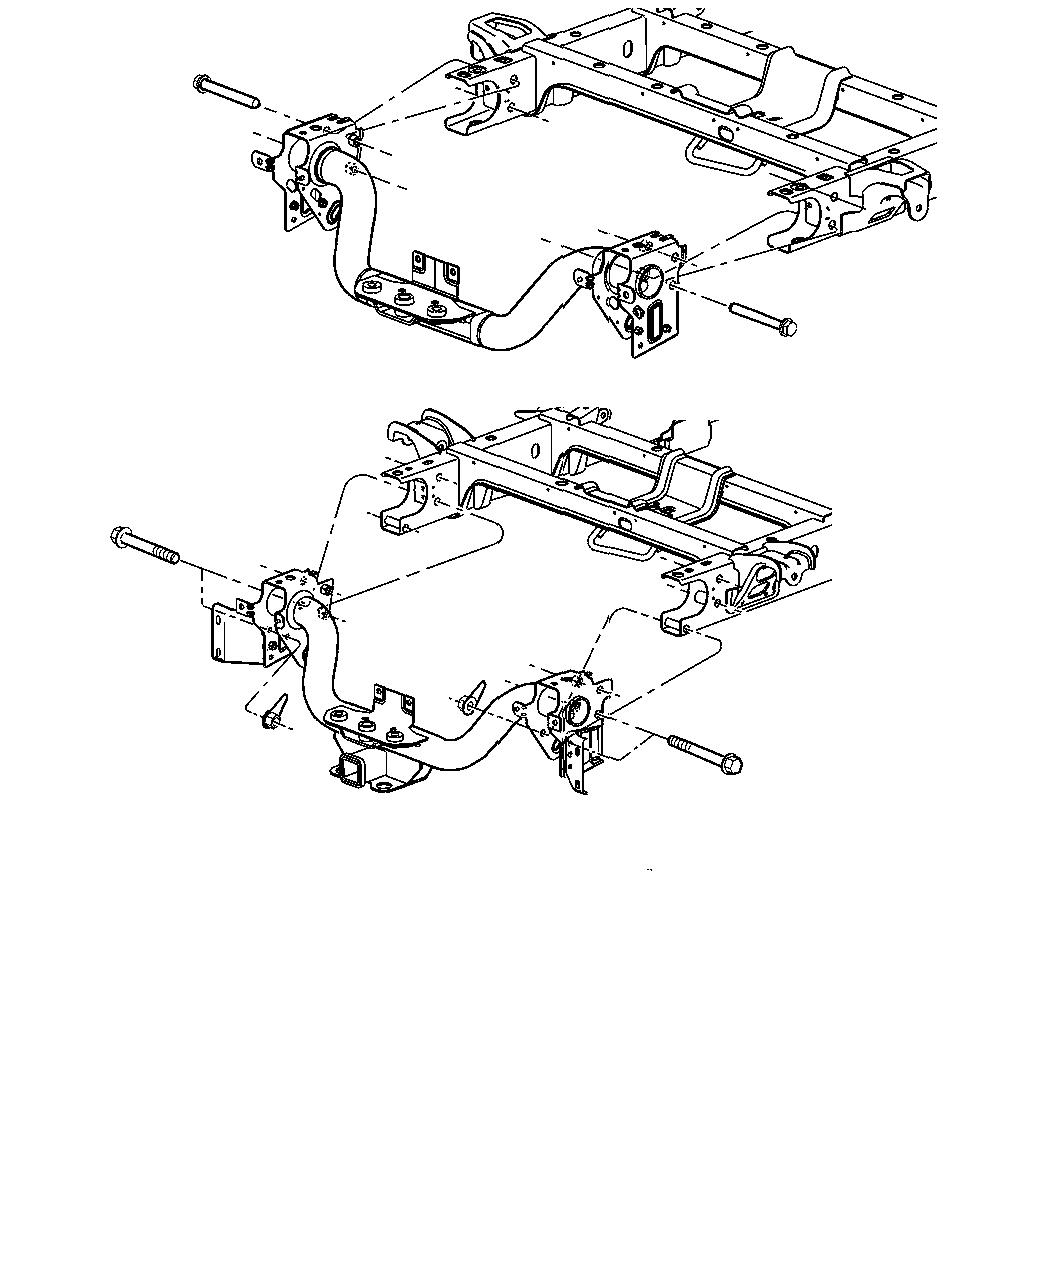 Ram Adapter Trailer Tow 2 5 Inch To 2 Inch